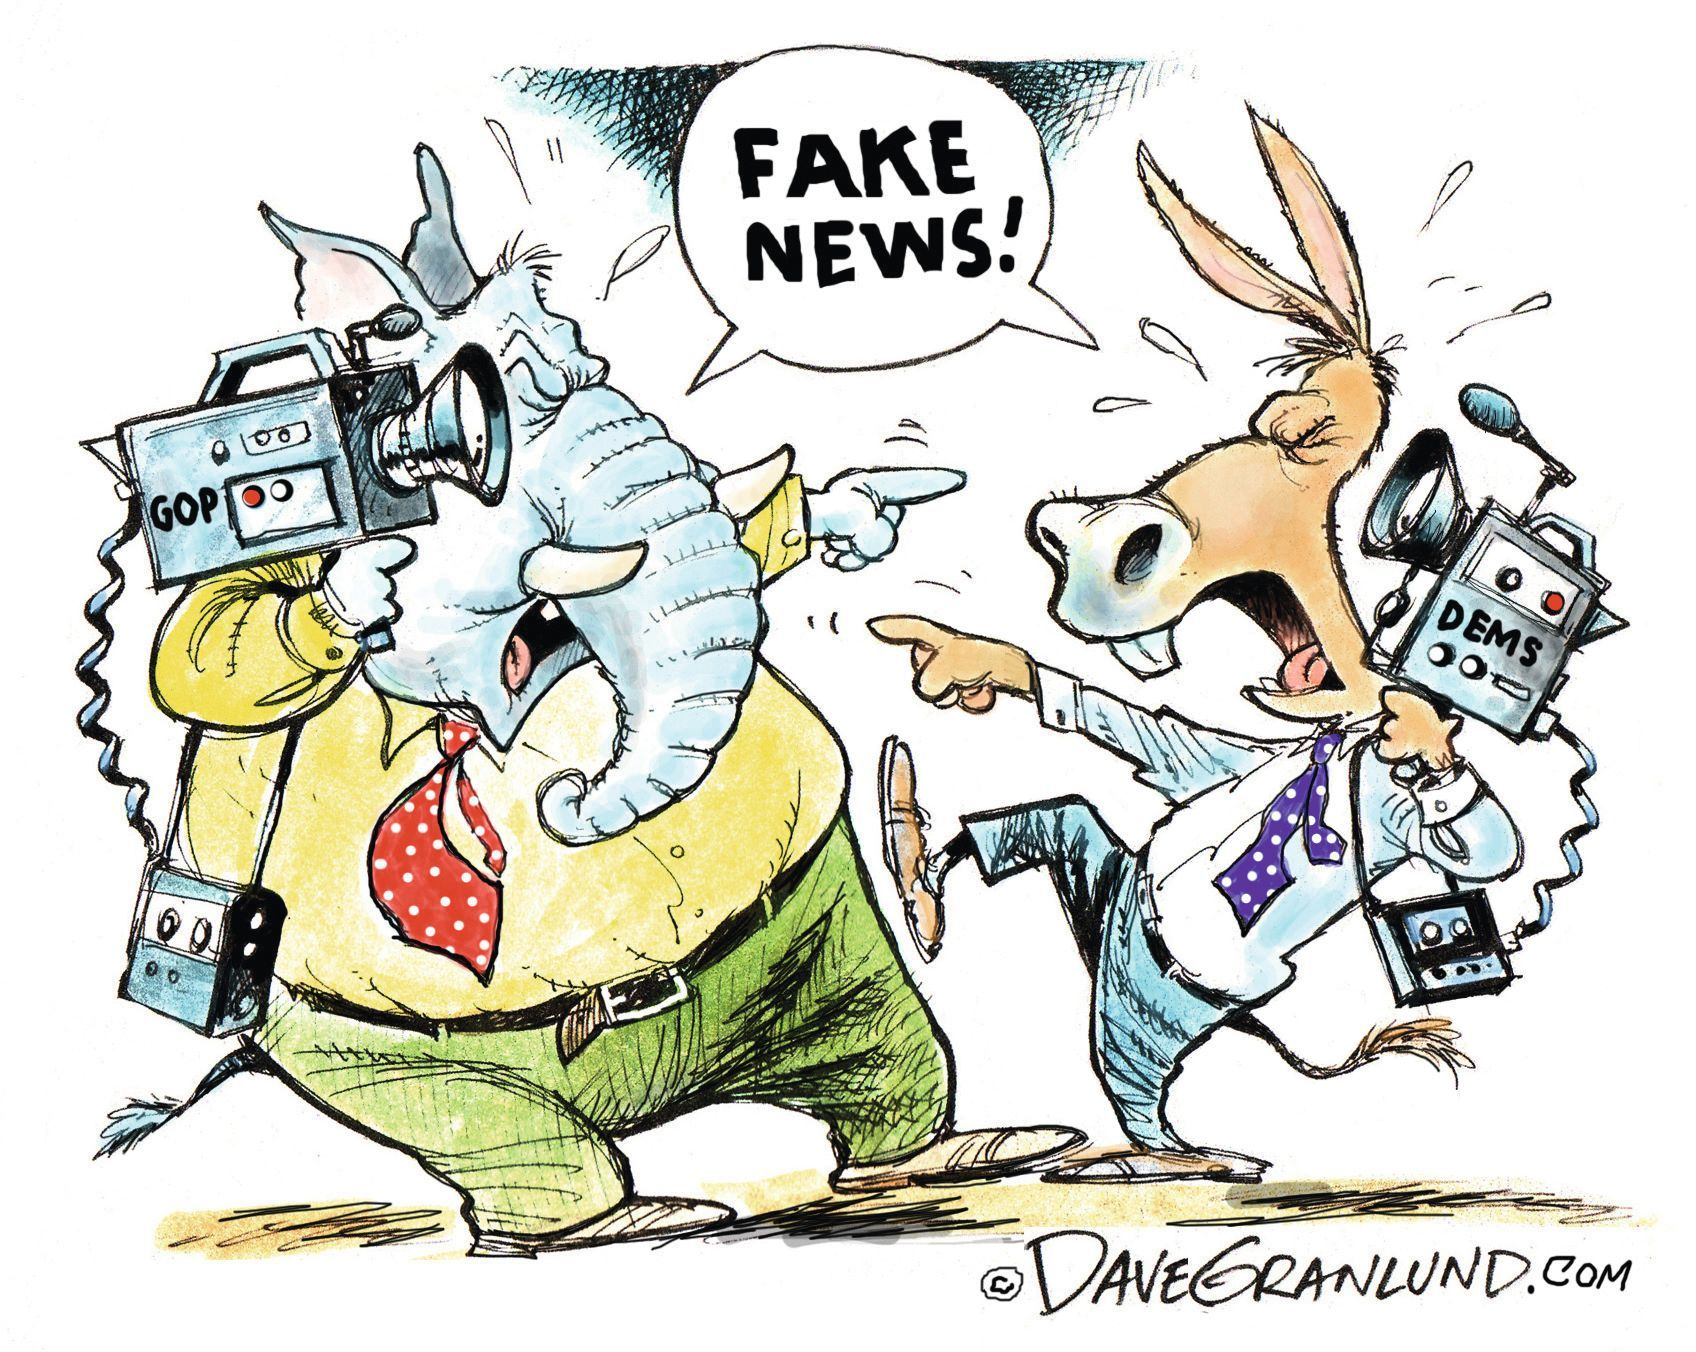 Fake News!, Dave Granlund, 2017.